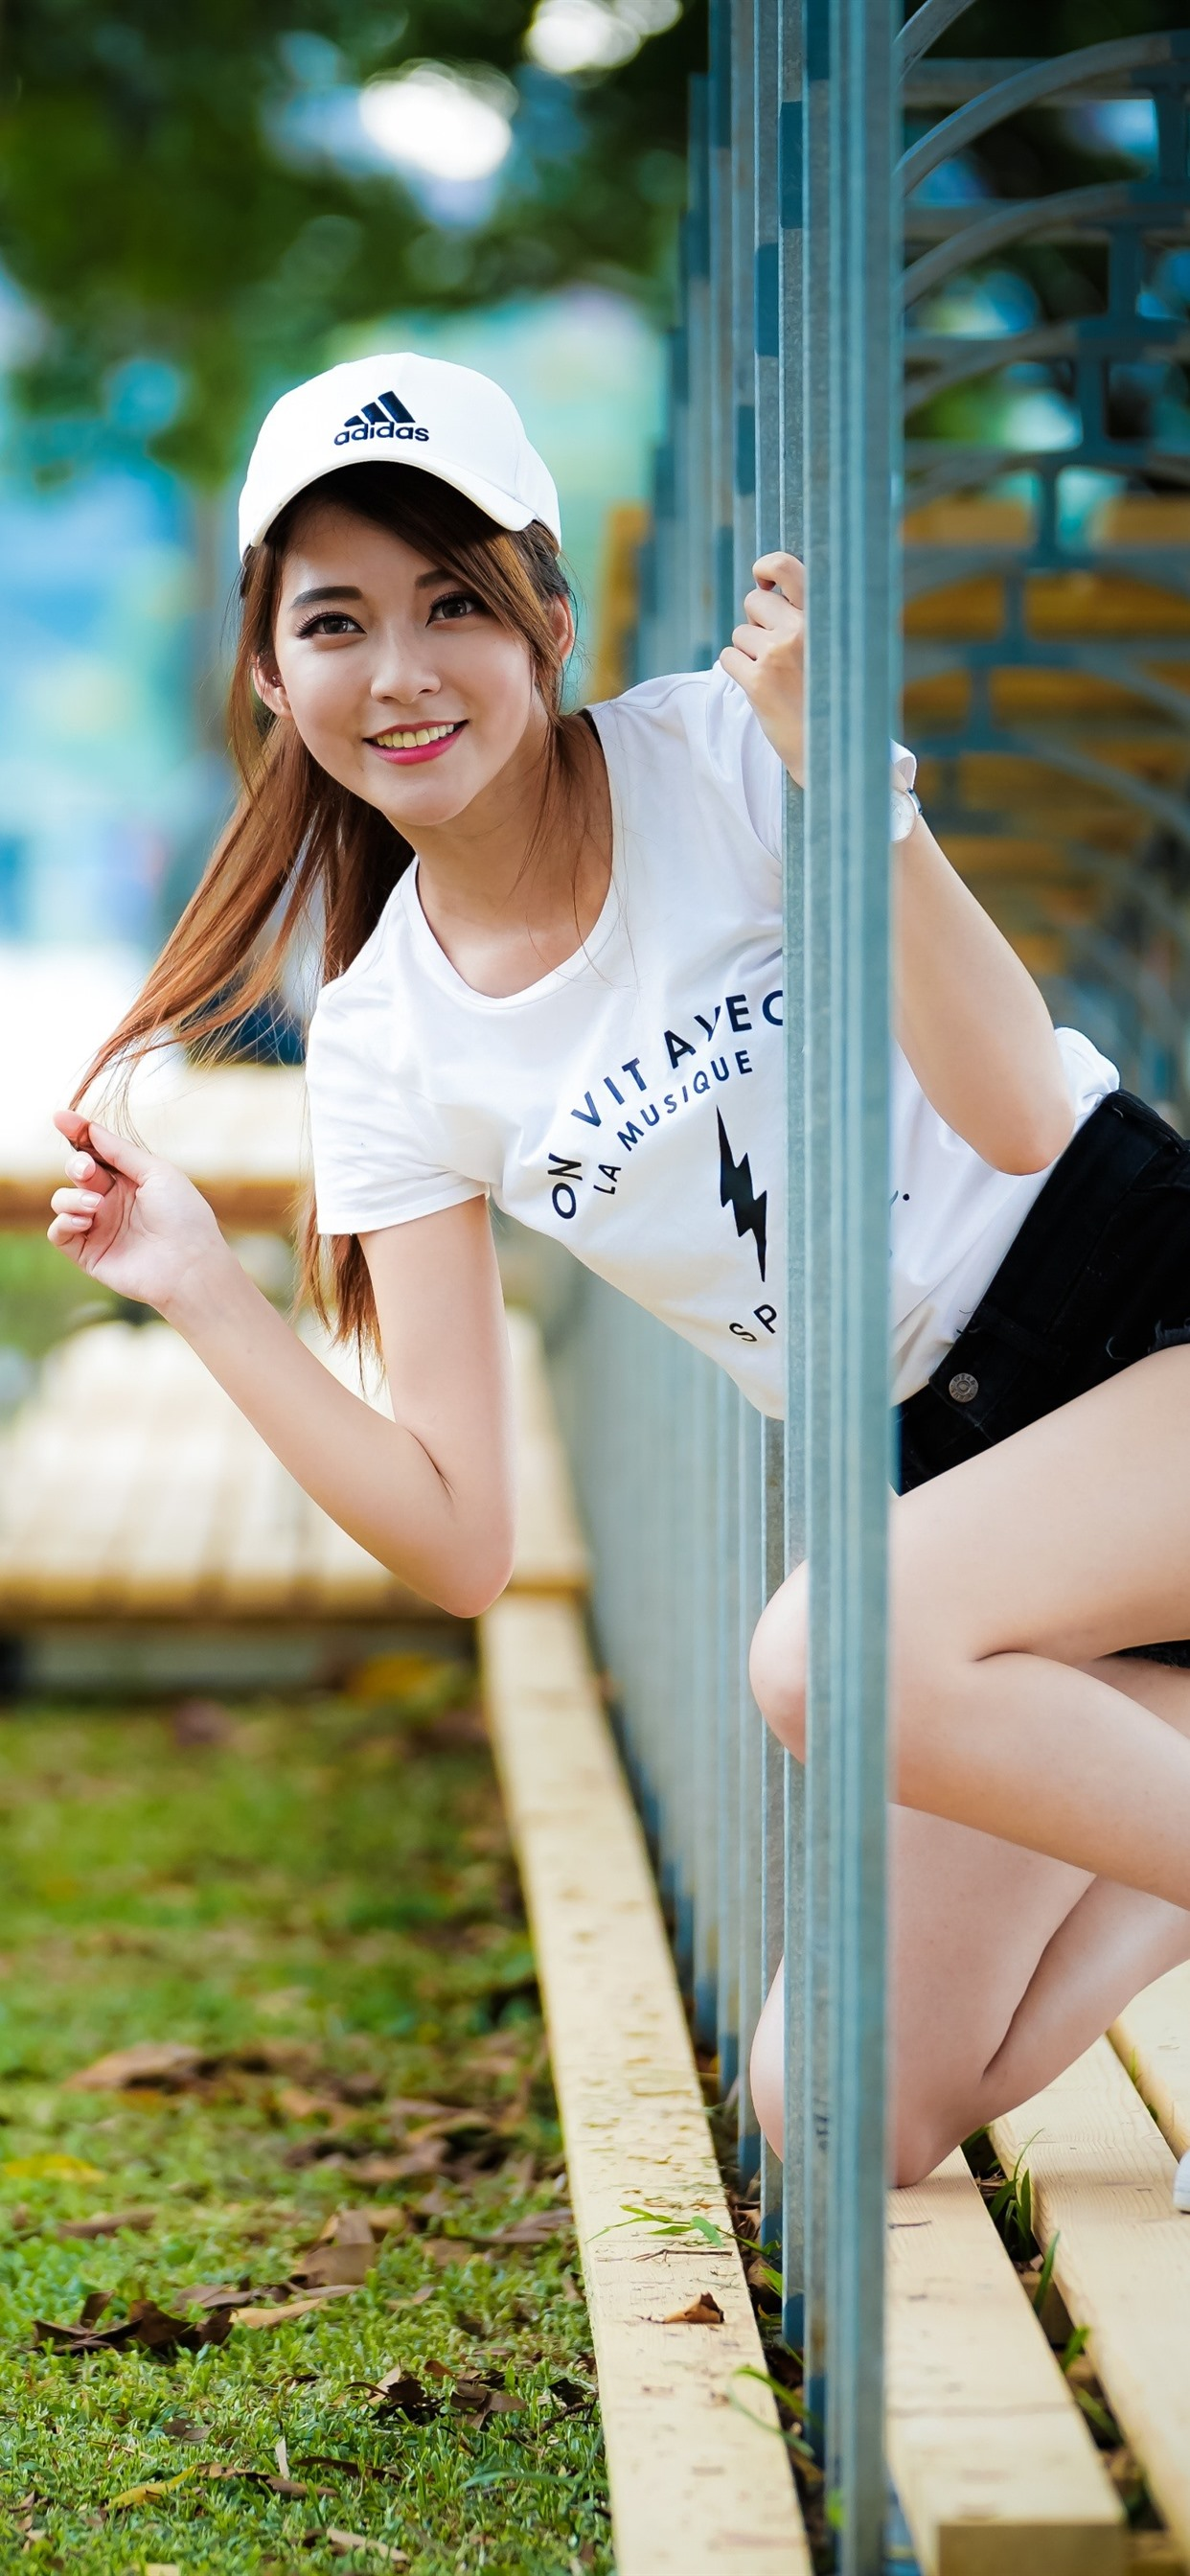 Smile Asian Girl Channel 1242x2688 Iphone 11 Pro Xs Max Wallpaper Background Picture Image